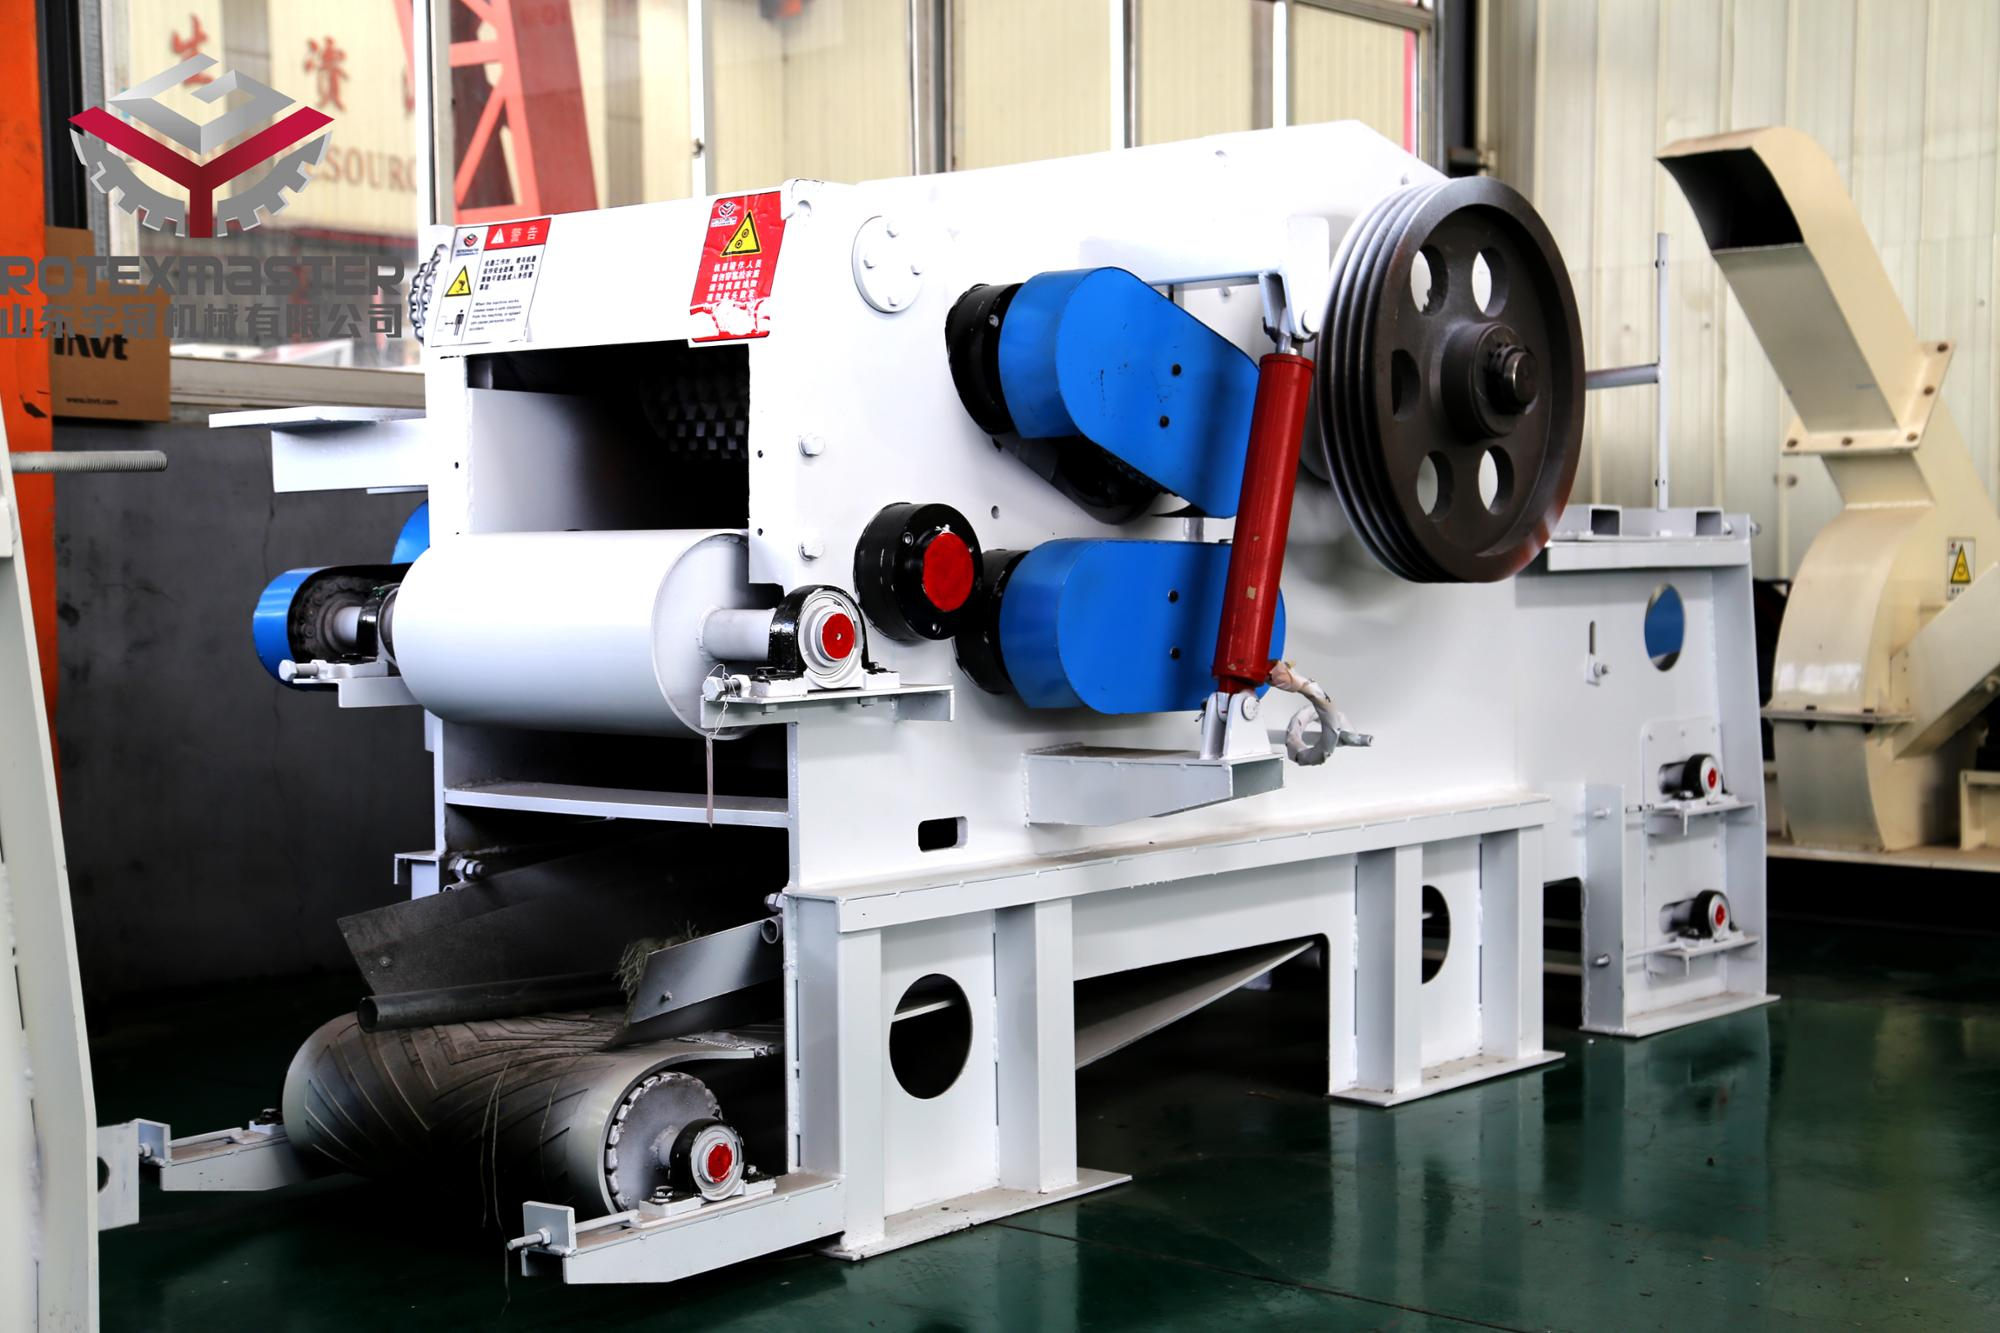 US $1890 0 |Wood Chipper Shredder and Industrial Wood Chipper-in Wood  Pellet Mills from Tools on Aliexpress com | Alibaba Group